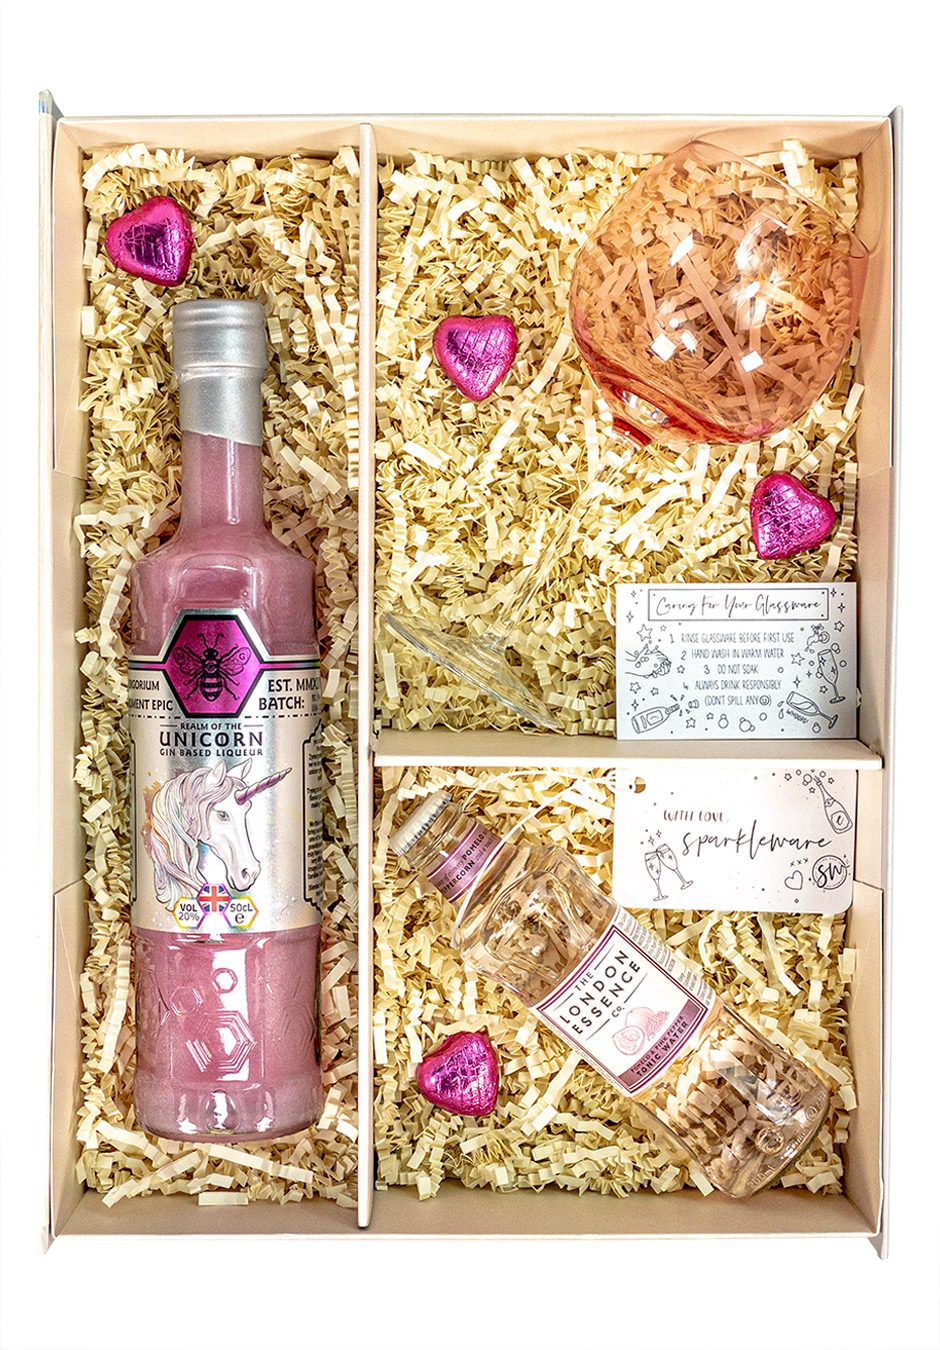 Zymurgorium Realm of the Unicorn Gin Based Liqueur | 50cl | Sparkleware gift set | Keico Drinks